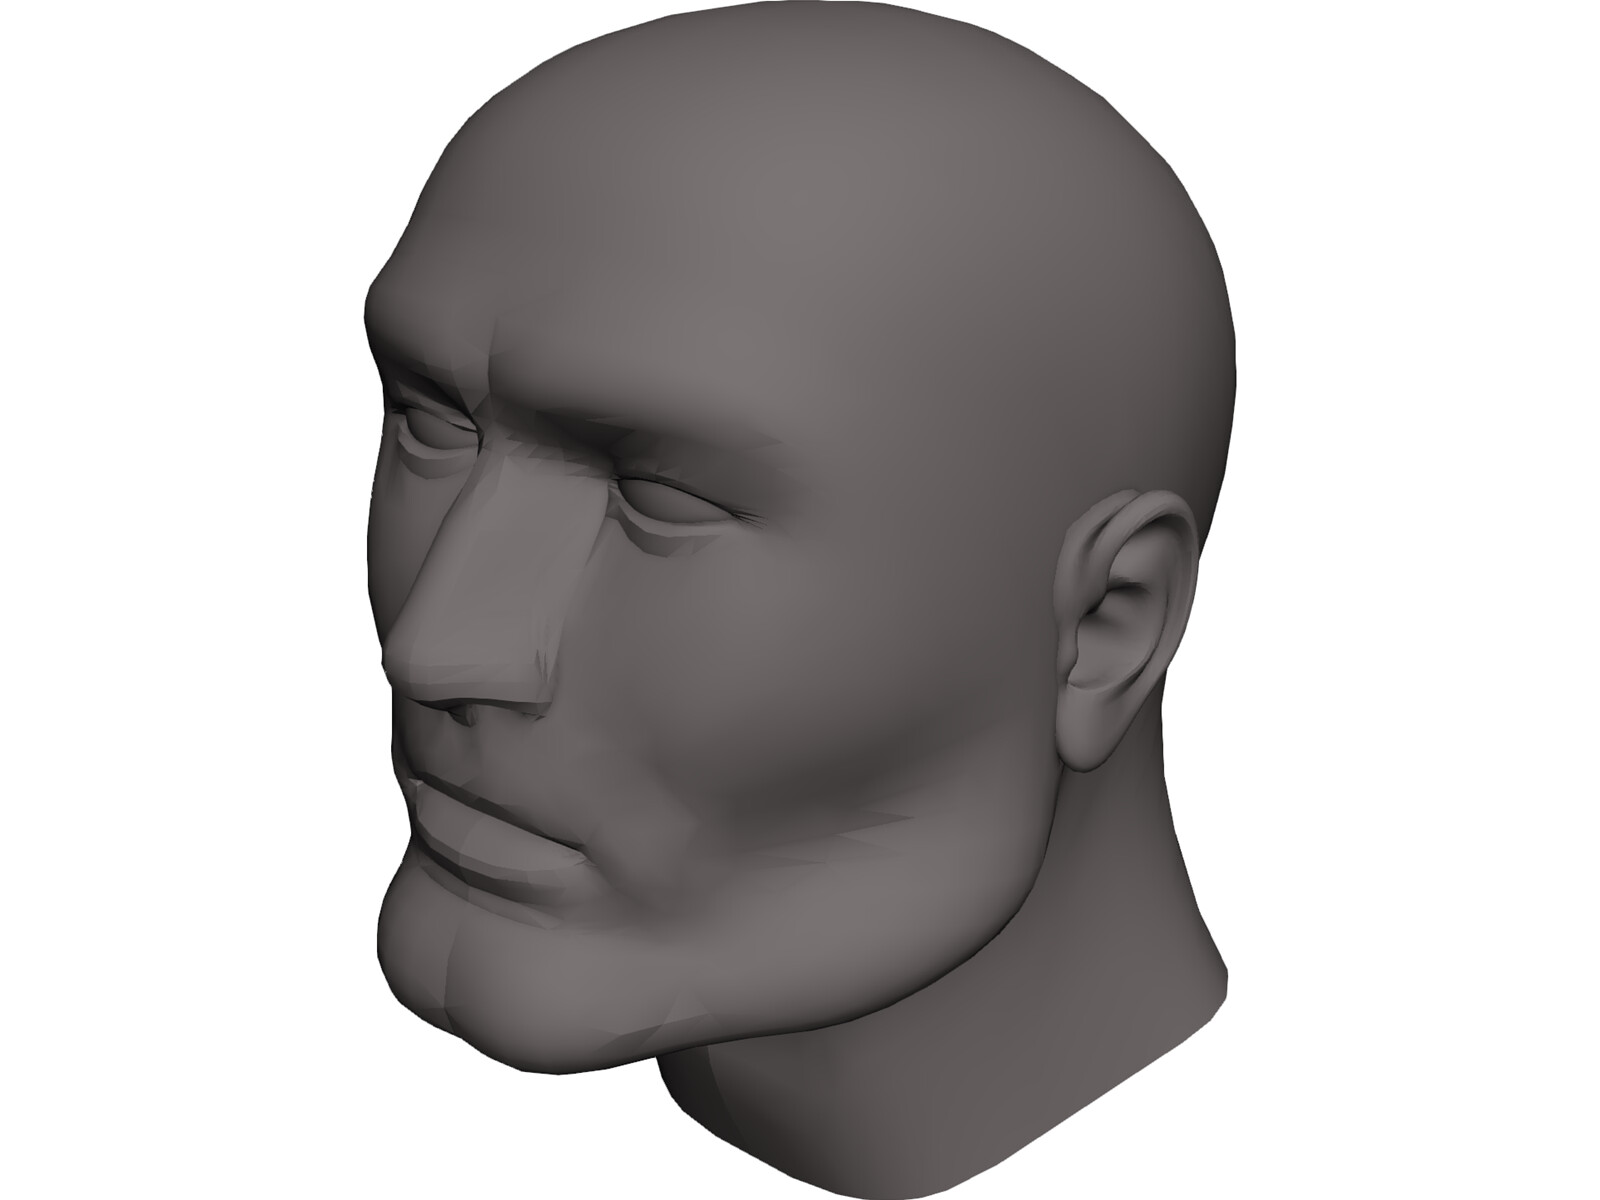 Head Male 3D CAD Model